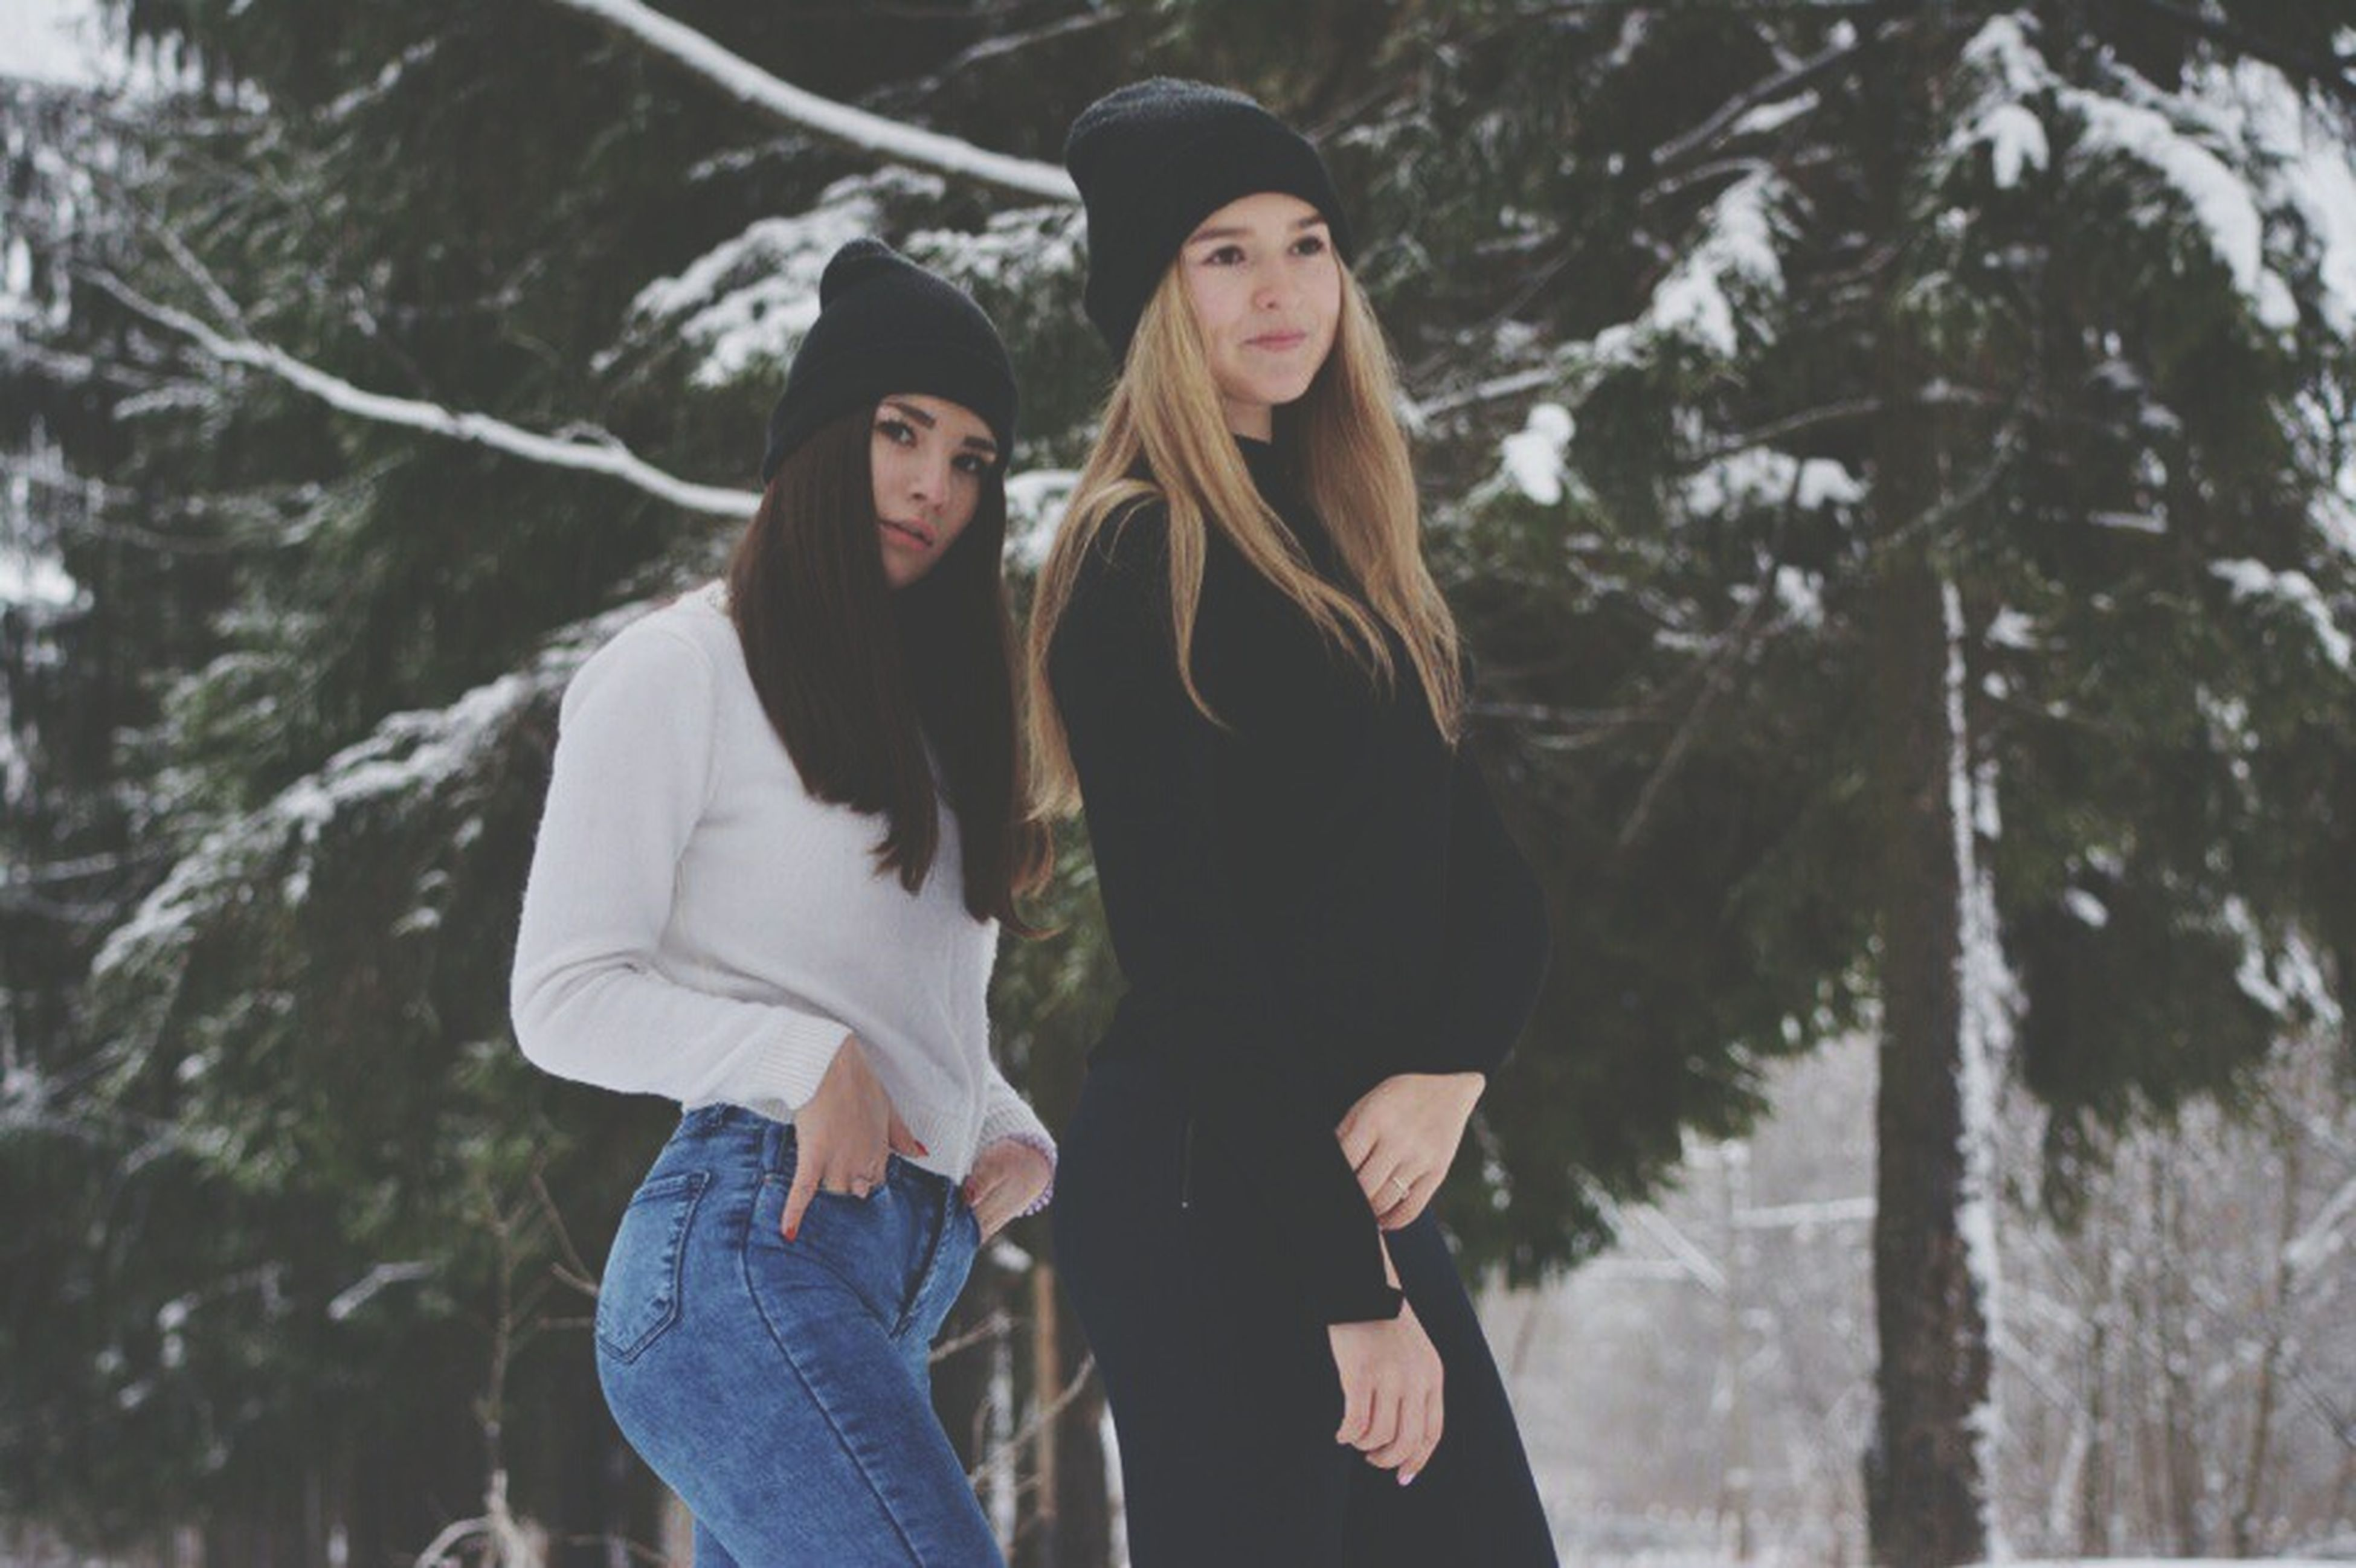 winter, cold temperature, two people, love, togetherness, nature, friendship, warm clothing, snow, bonding, happiness, women, smiling, leisure activity, portrait, adult, adults only, day, people, young adult, outdoors